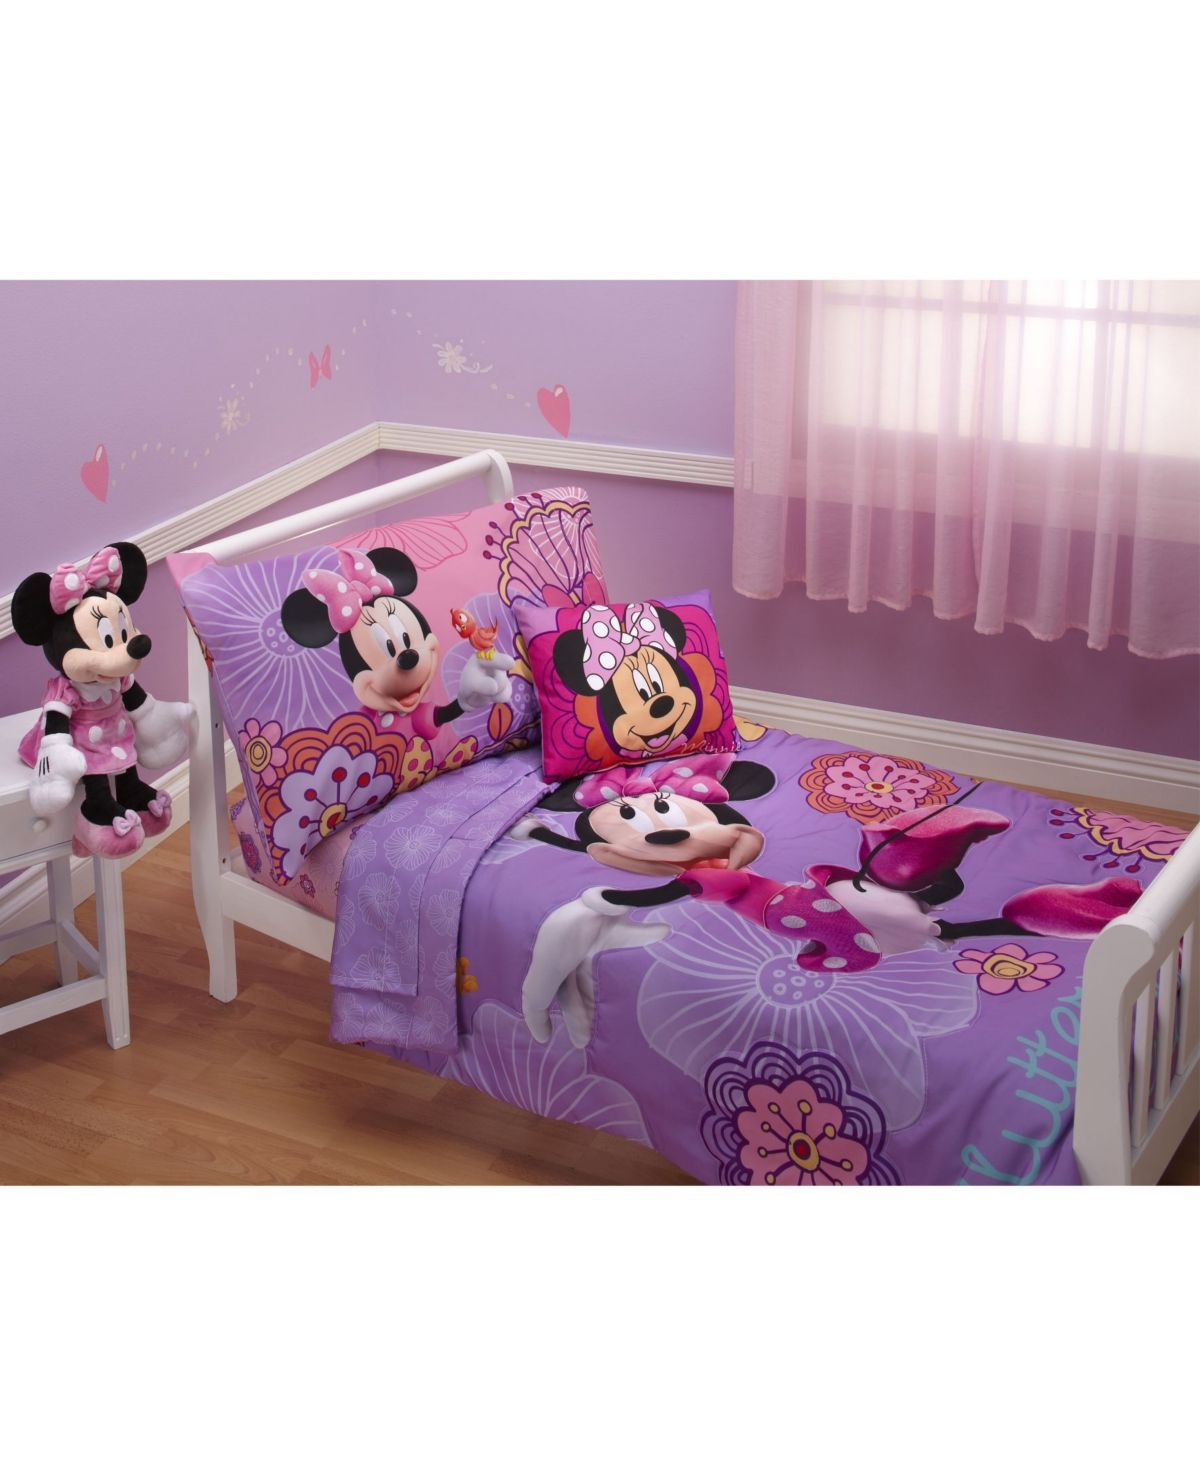 Disney Minnie Mouse Fluttery Friends 4 Piece Toddler Bed ...